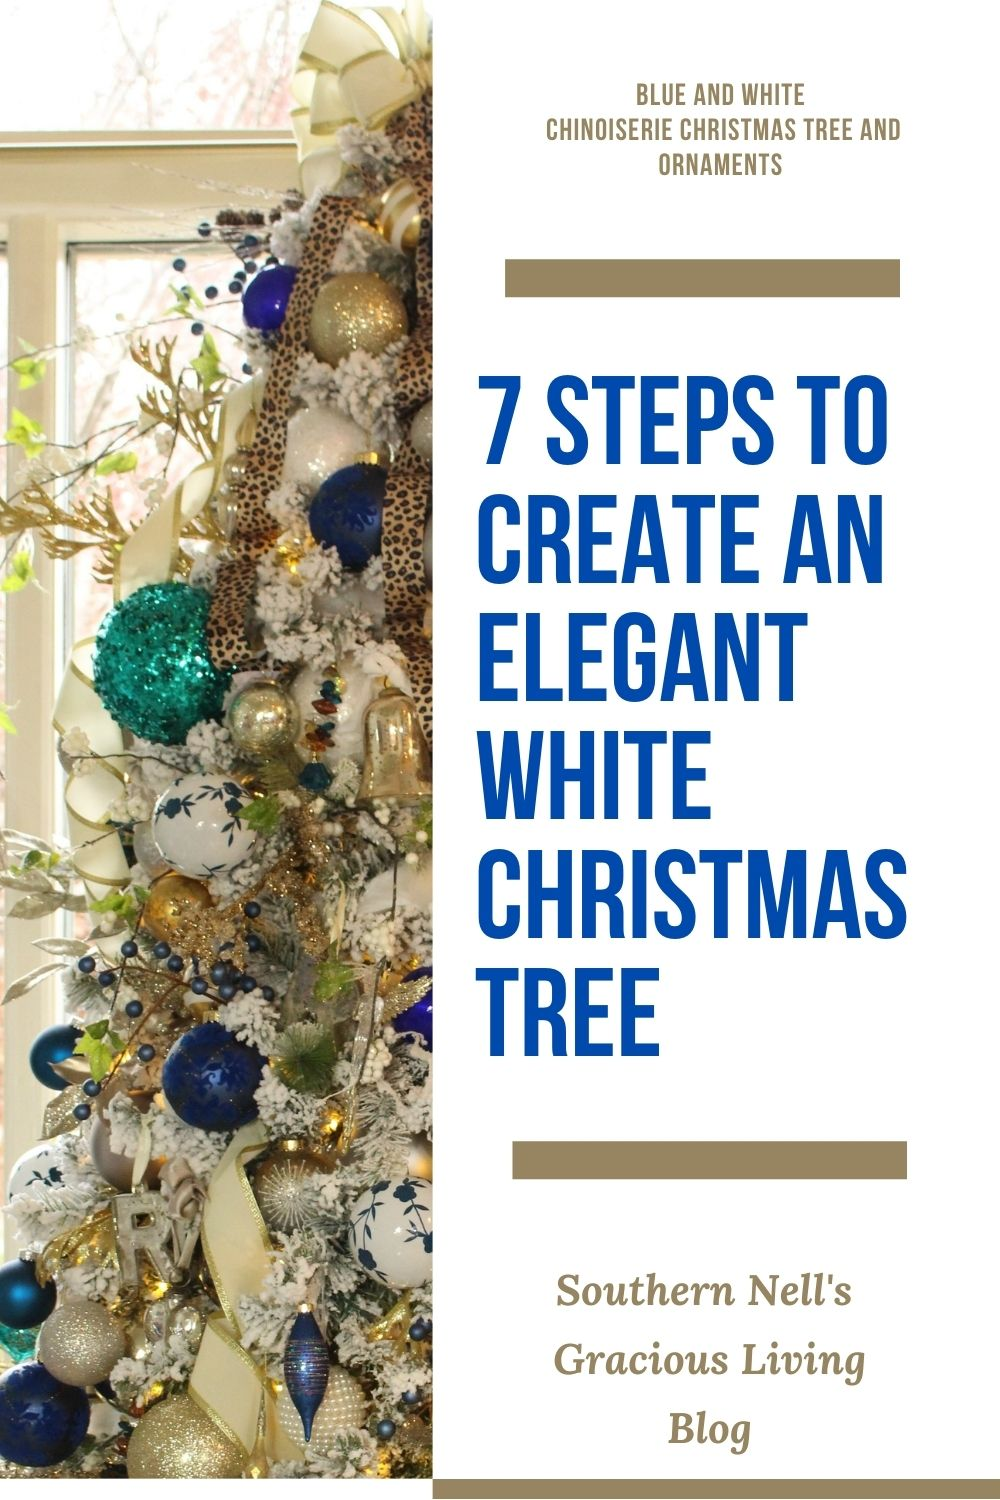 Blue and White Chinoiserie Christmas Tree